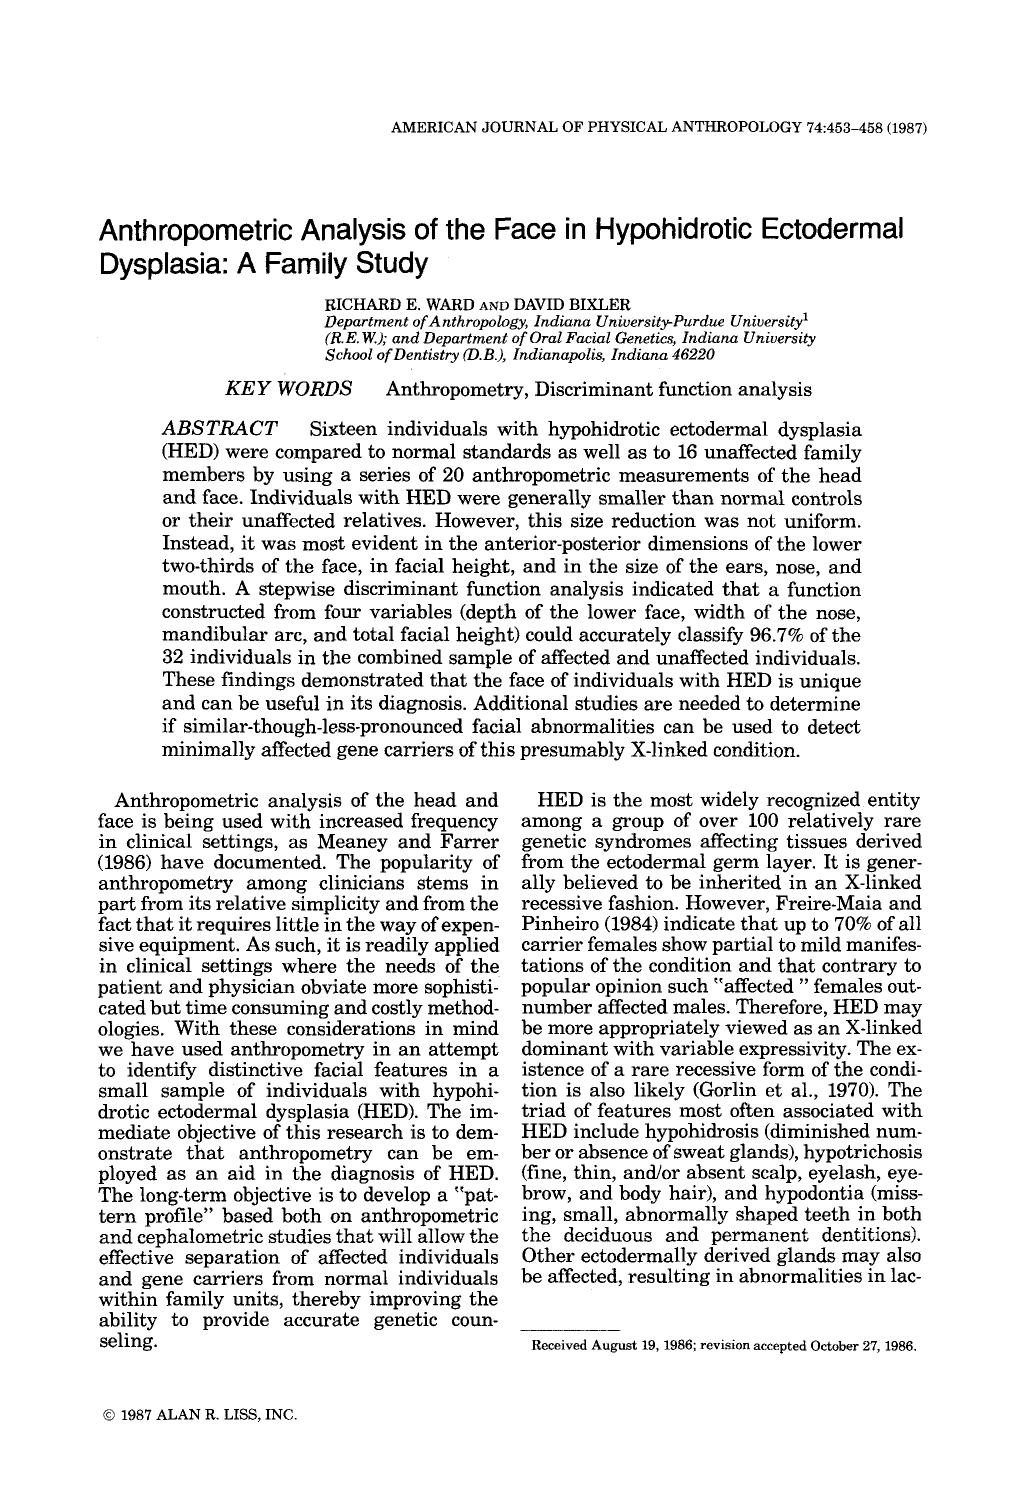 Anthropometric analysis of the face in hypohidrotic